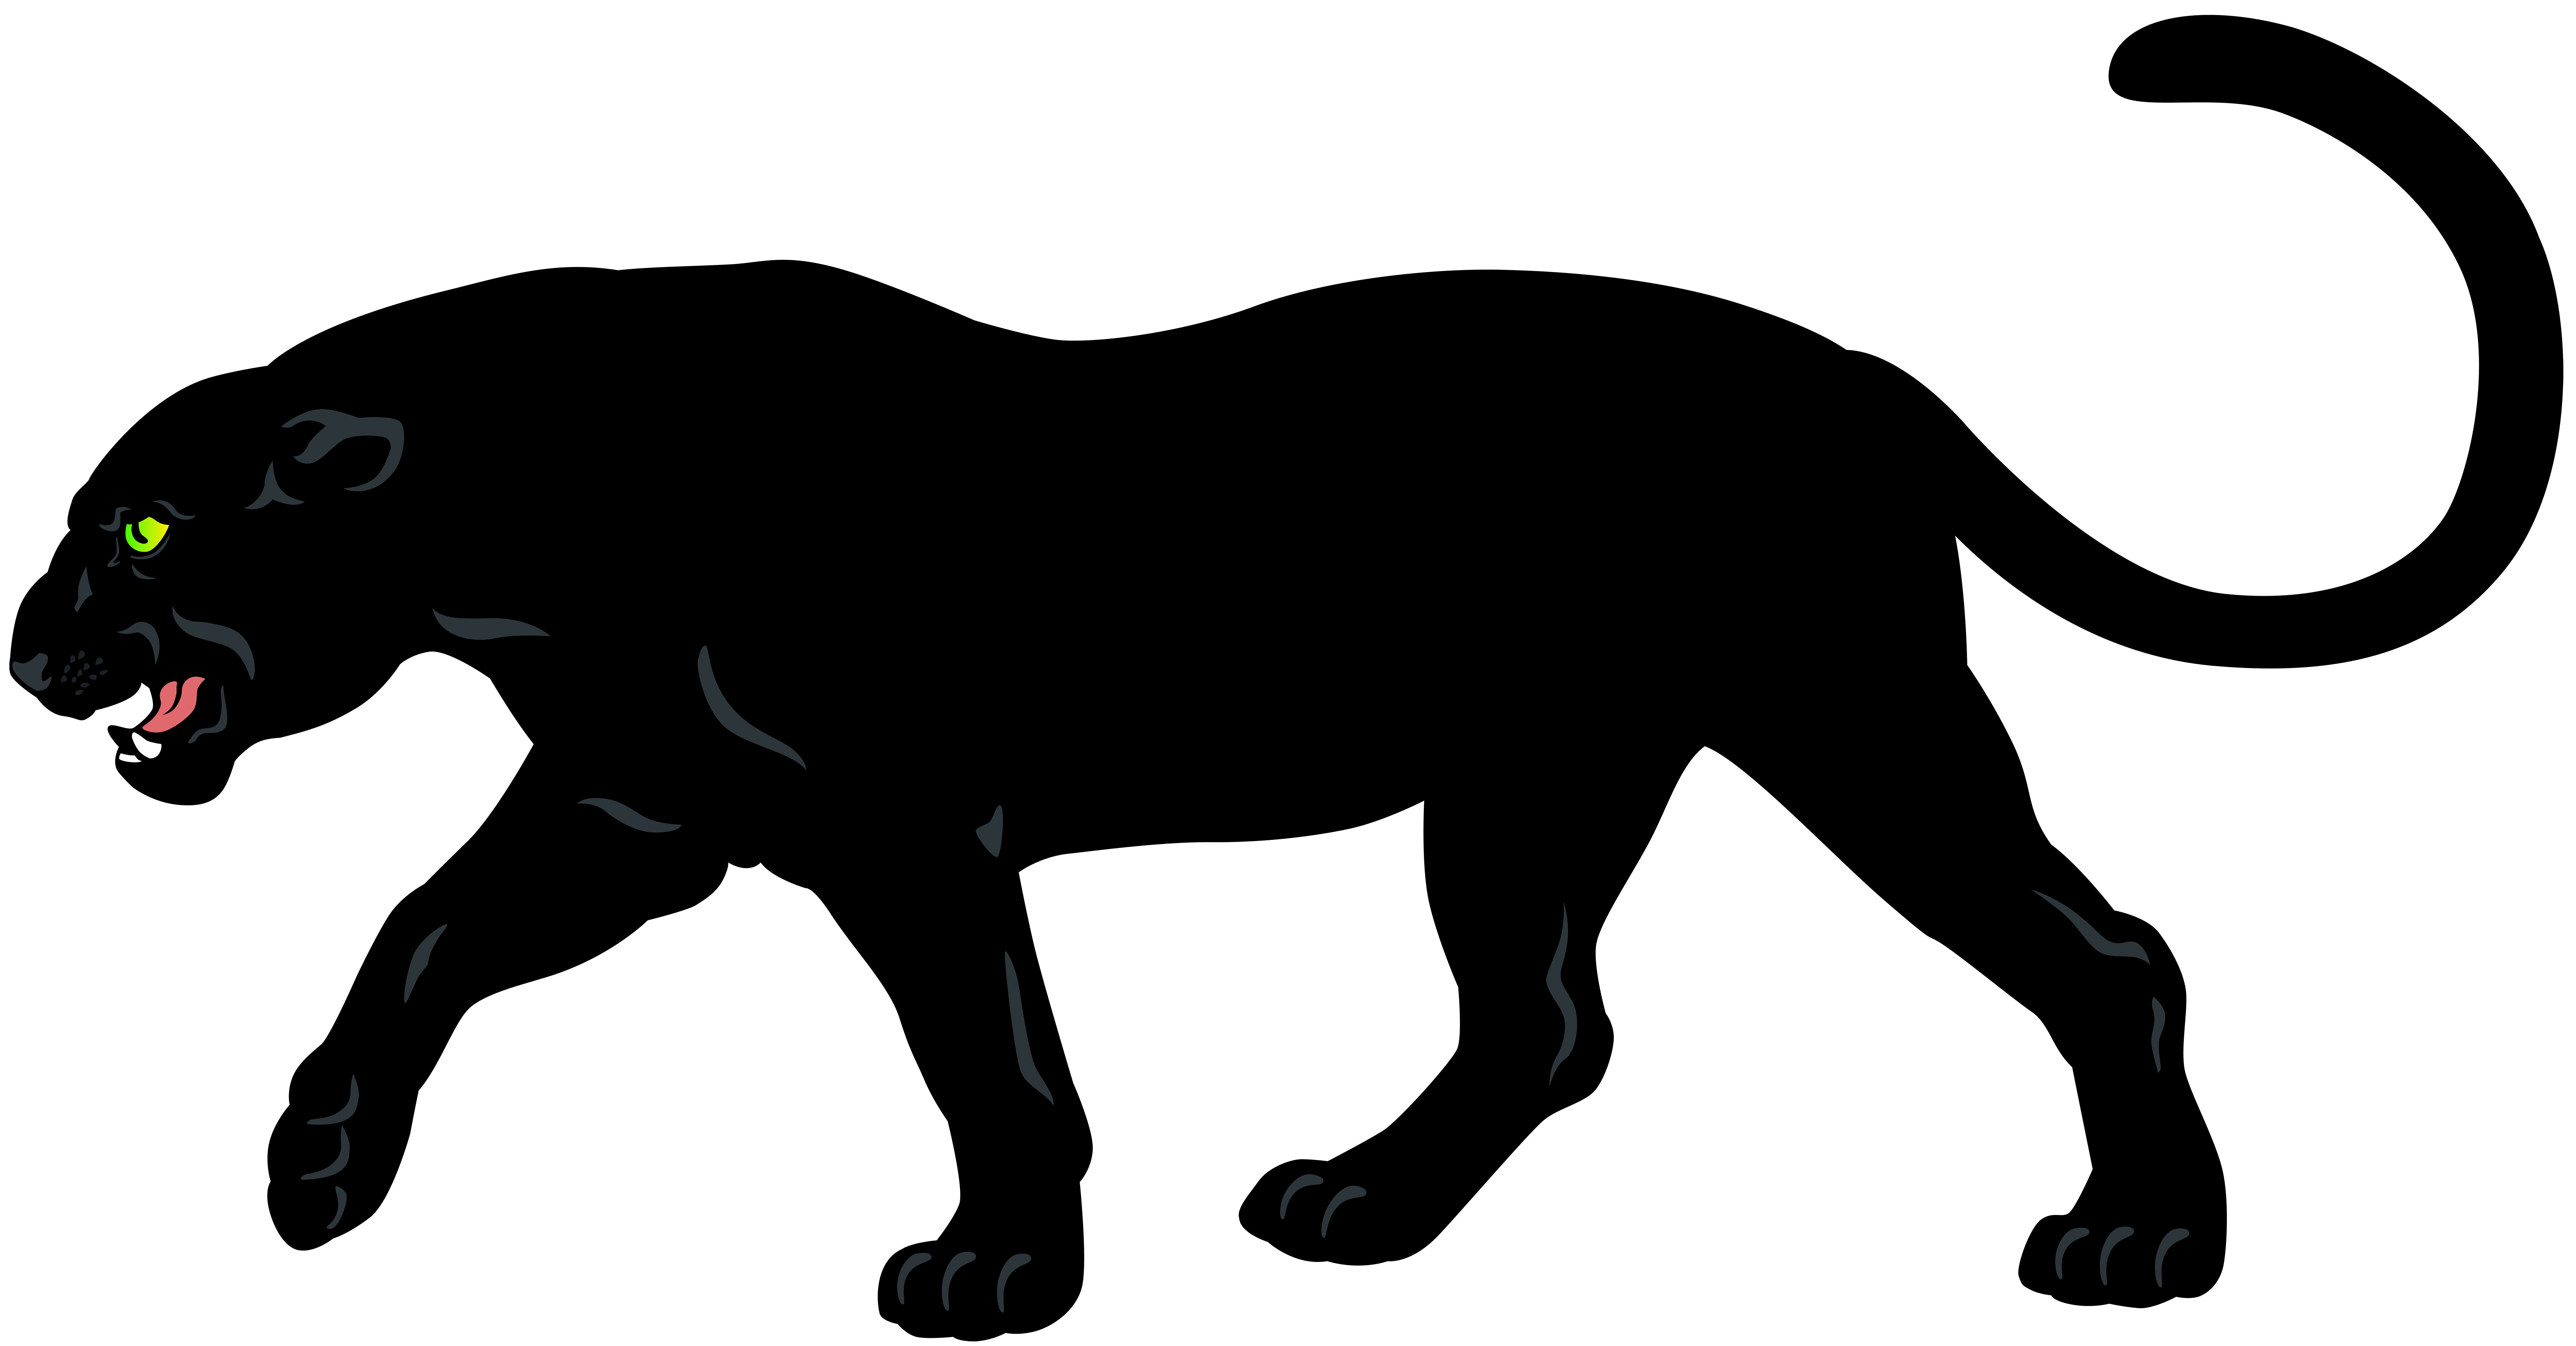 Black Panther Png Clip Art Image Gallery Yopriceville High Quality Images And Transparent Png Free Clipart Panther Images Panther Art Images